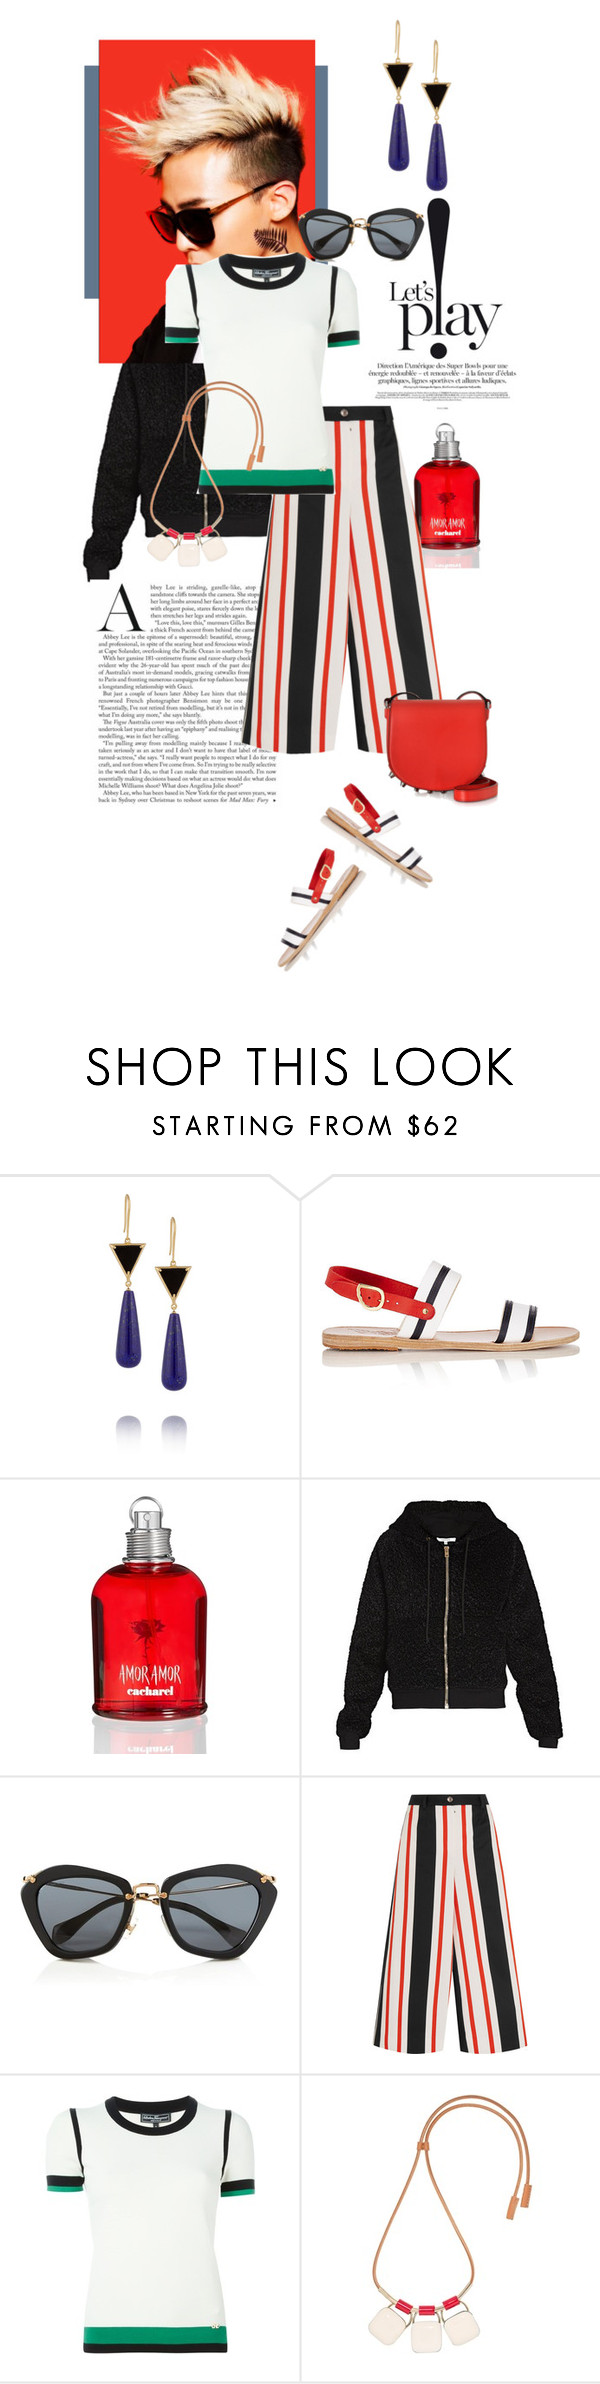 """""""Let's Play!"""" by mathilda-moo ❤ liked on Polyvore featuring Elizabeth and James, Ancient Greek Sandals, Cacharel, Carven, Miu Miu, Dolce&Gabbana, Salvatore Ferragamo, Marni, Alexander Wang and women's clothing"""